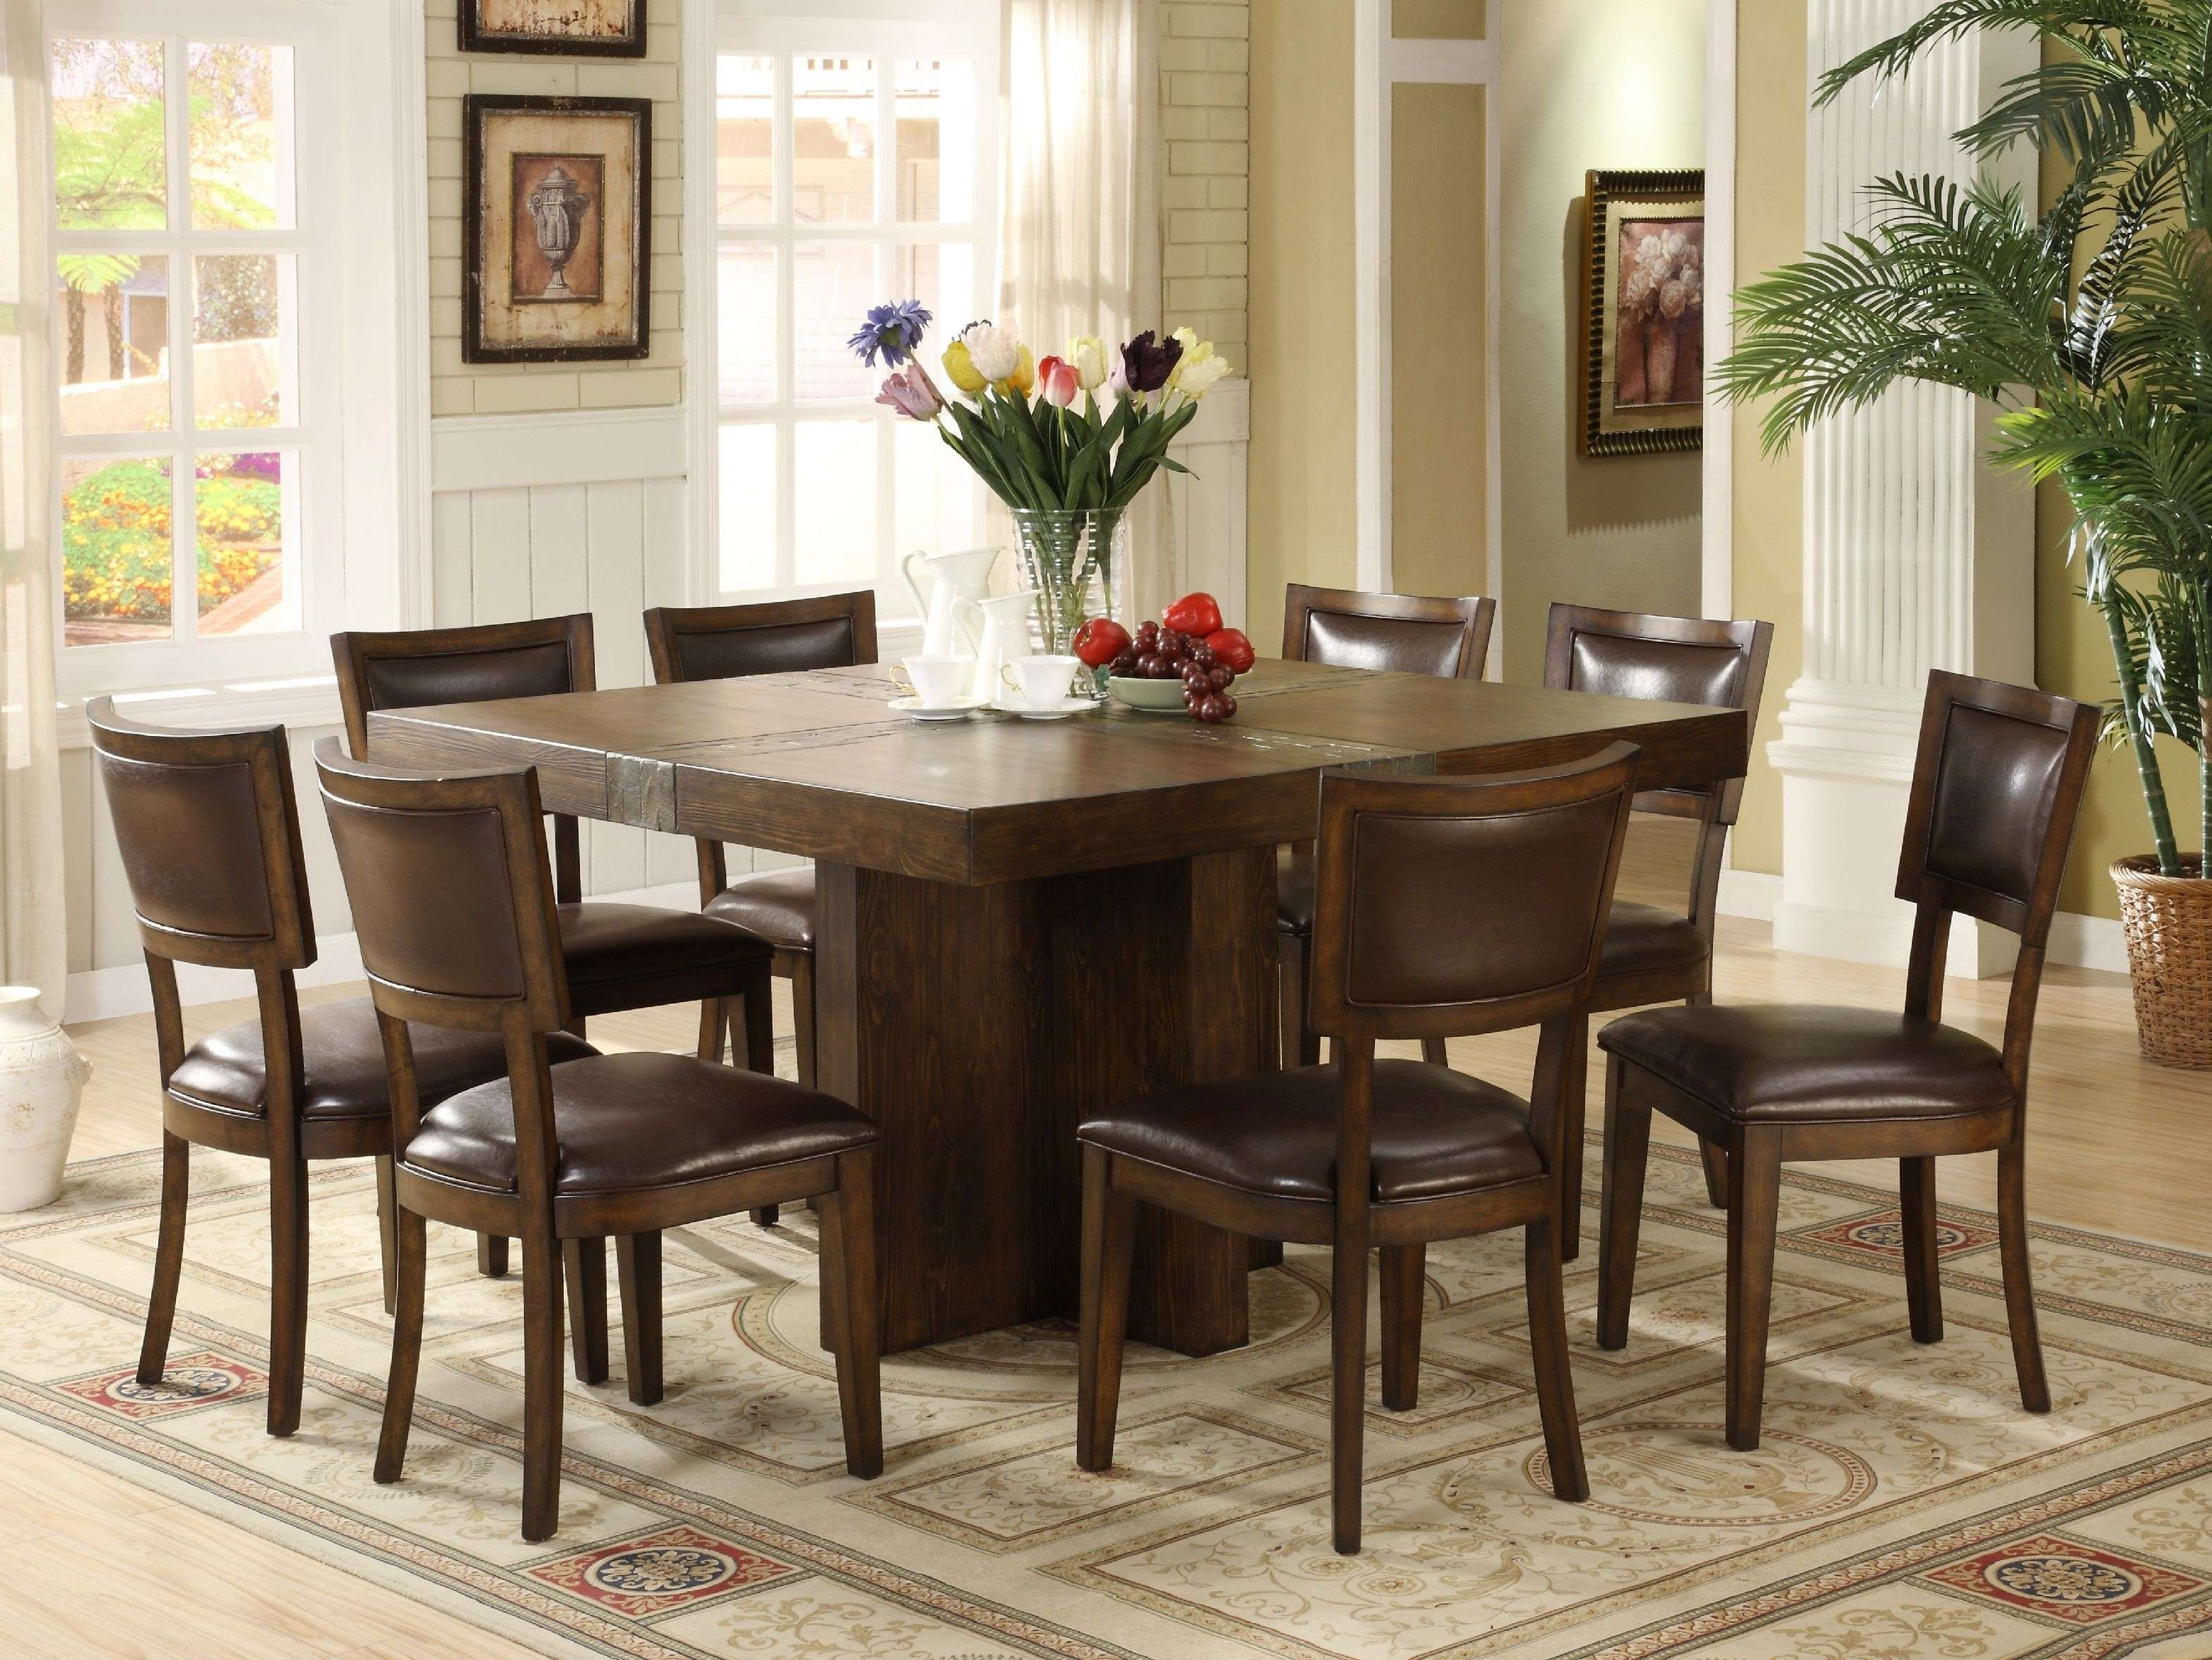 Dining Tables With 8 Seater For Most Recently Released Round Dining Tables For 8 Fresh Best 8 Seater Dining Table Set (Gallery 21 of 25)